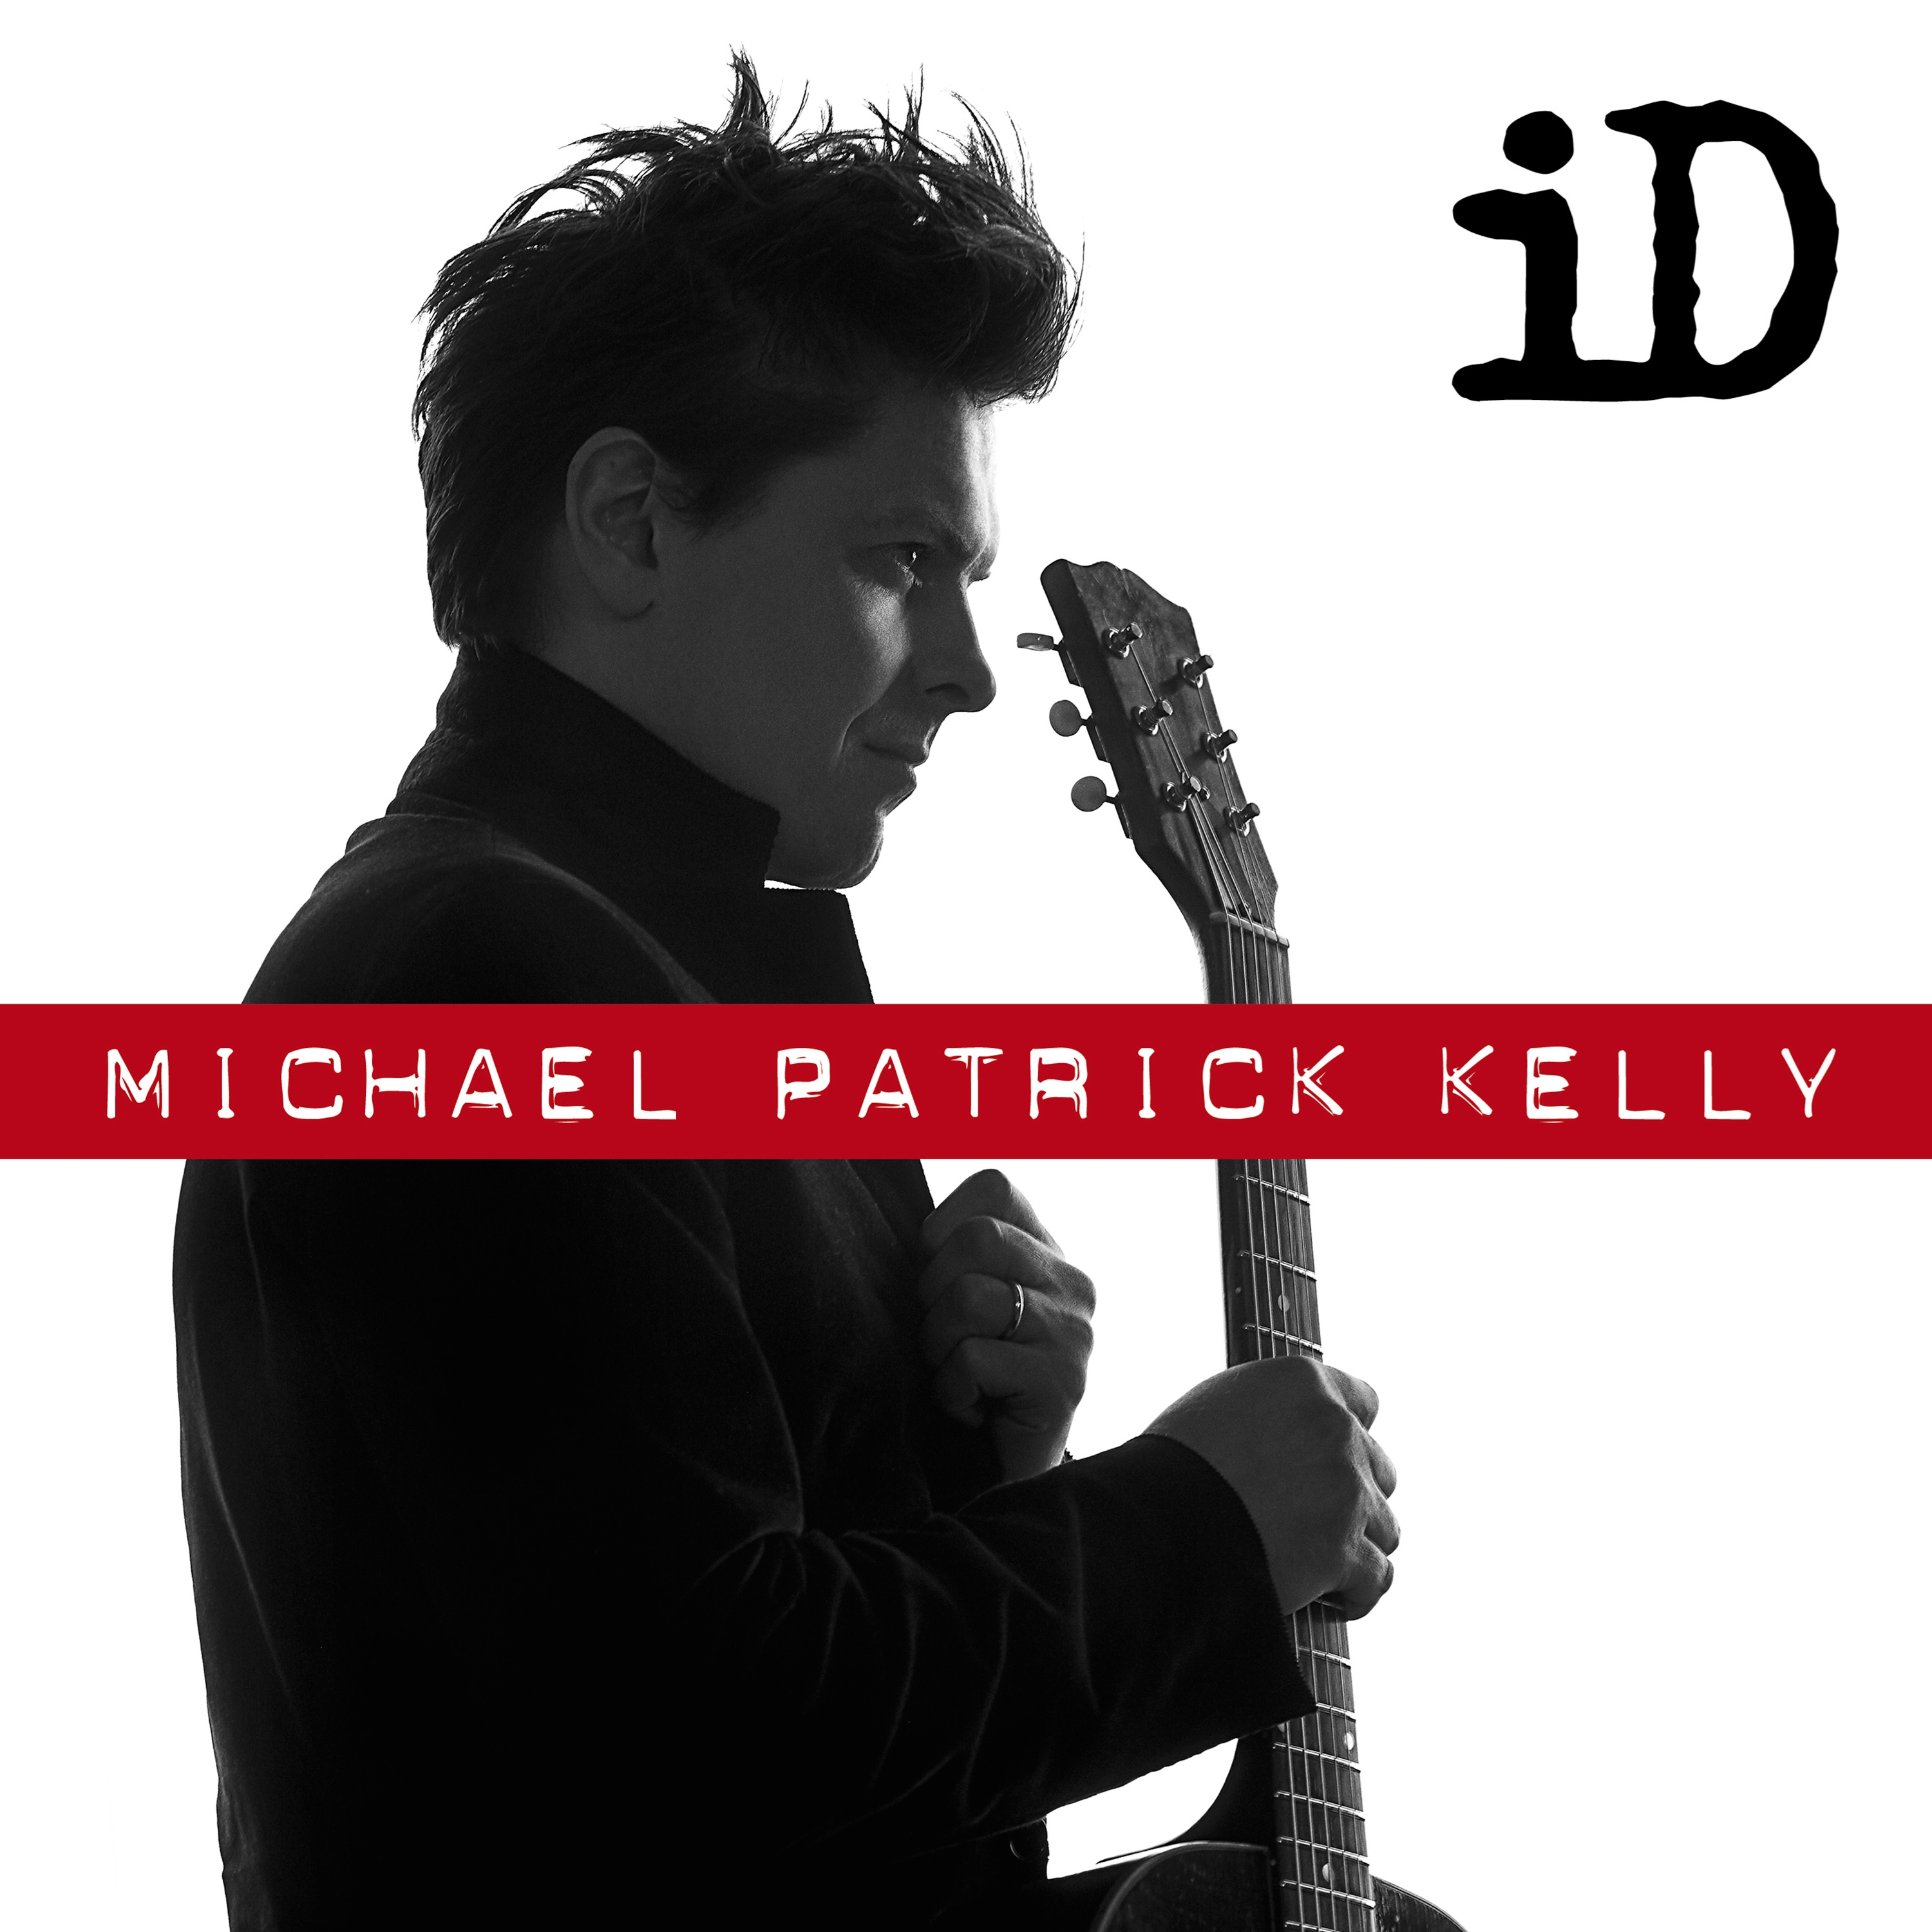 Cover: MICHAEL PATRICK KELLY FEAT. GE, ID